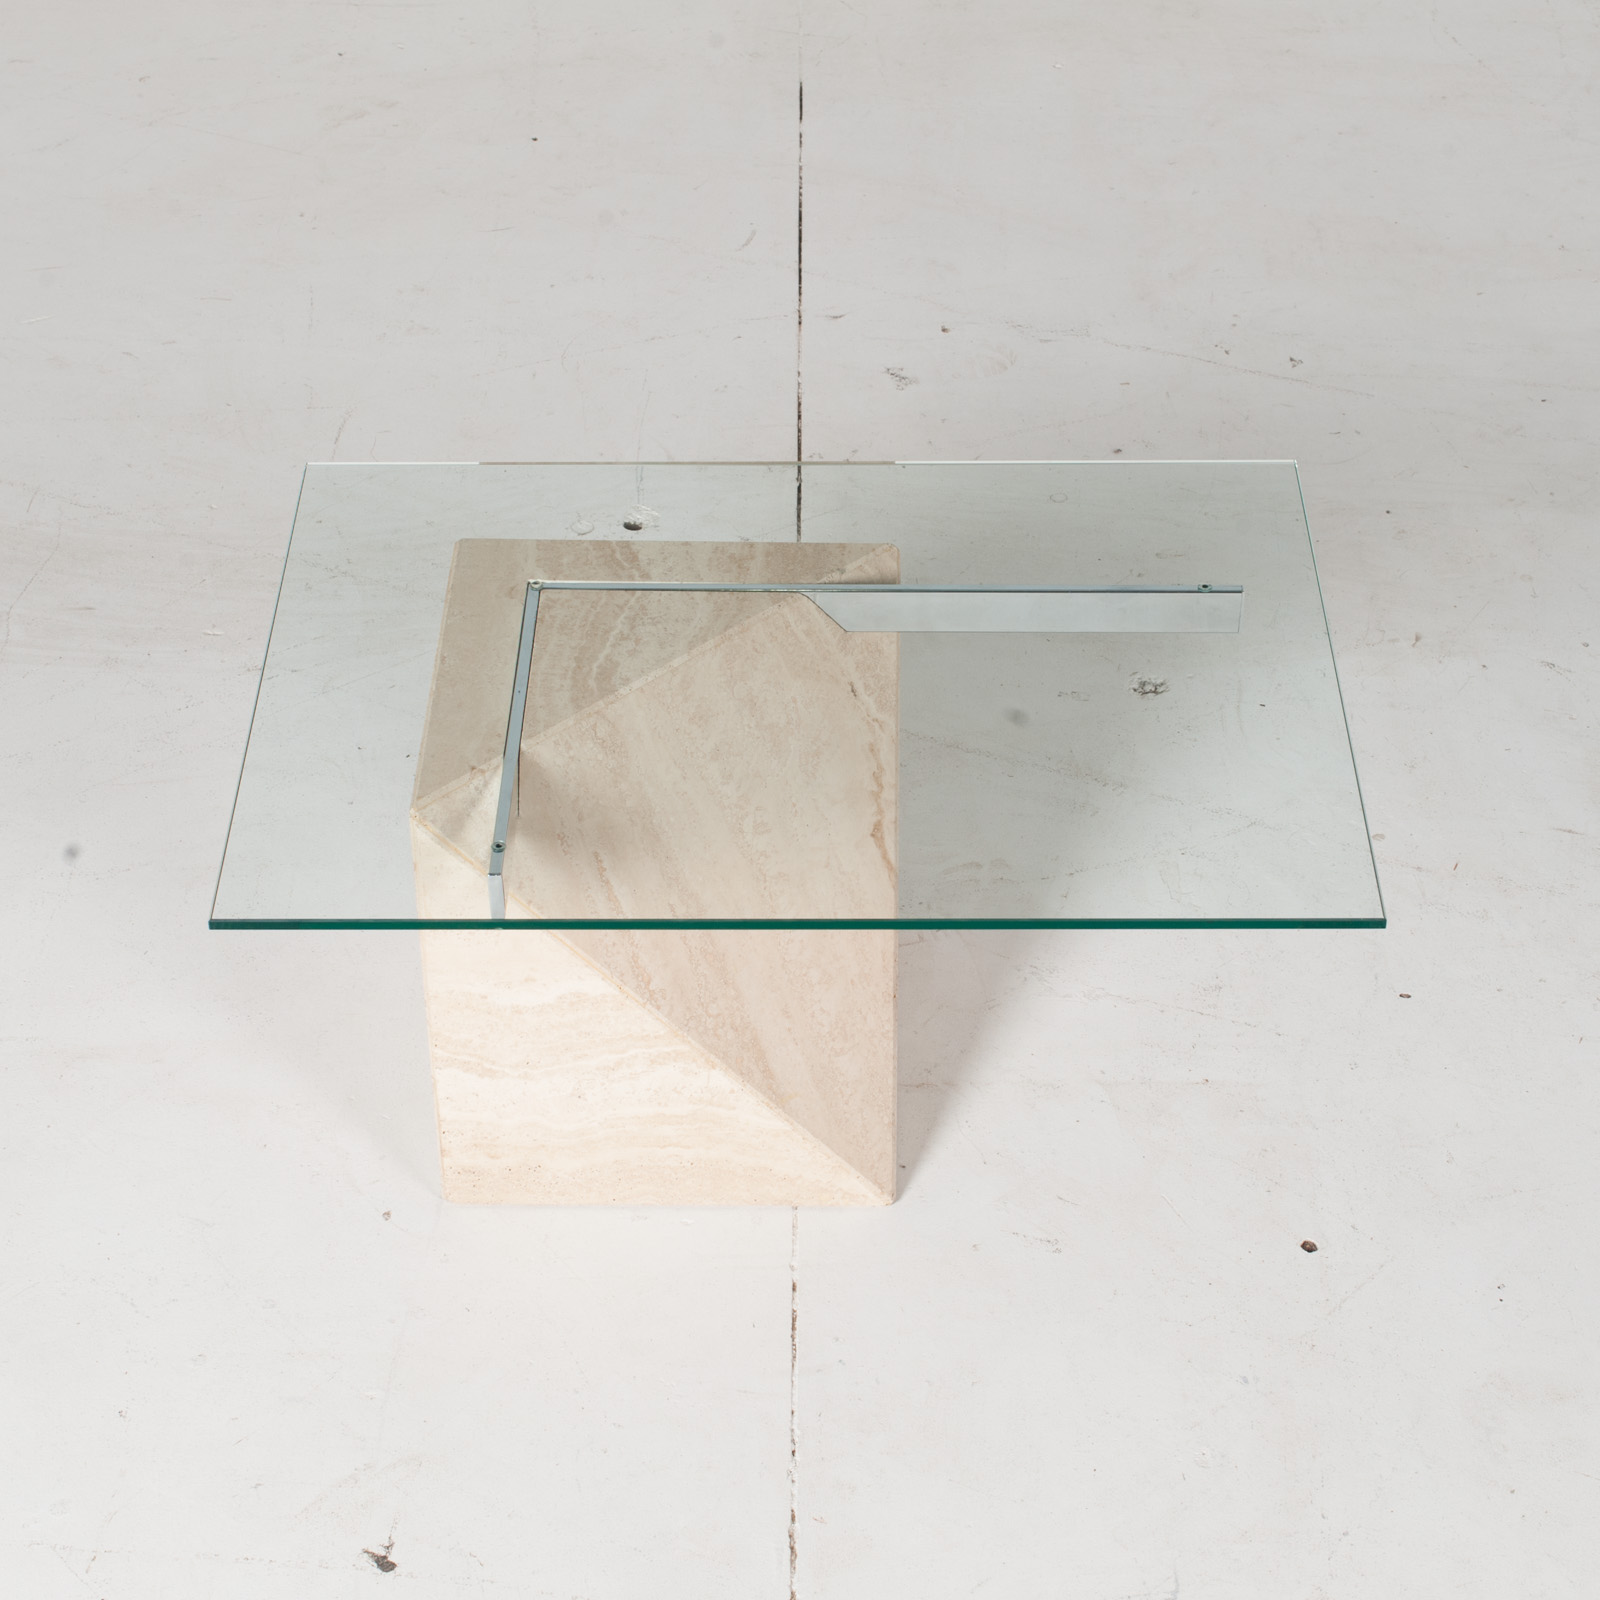 Coffee Table By Artedi In Travertine, Cantilevered Glass And Chrome, 1970s, Italy3